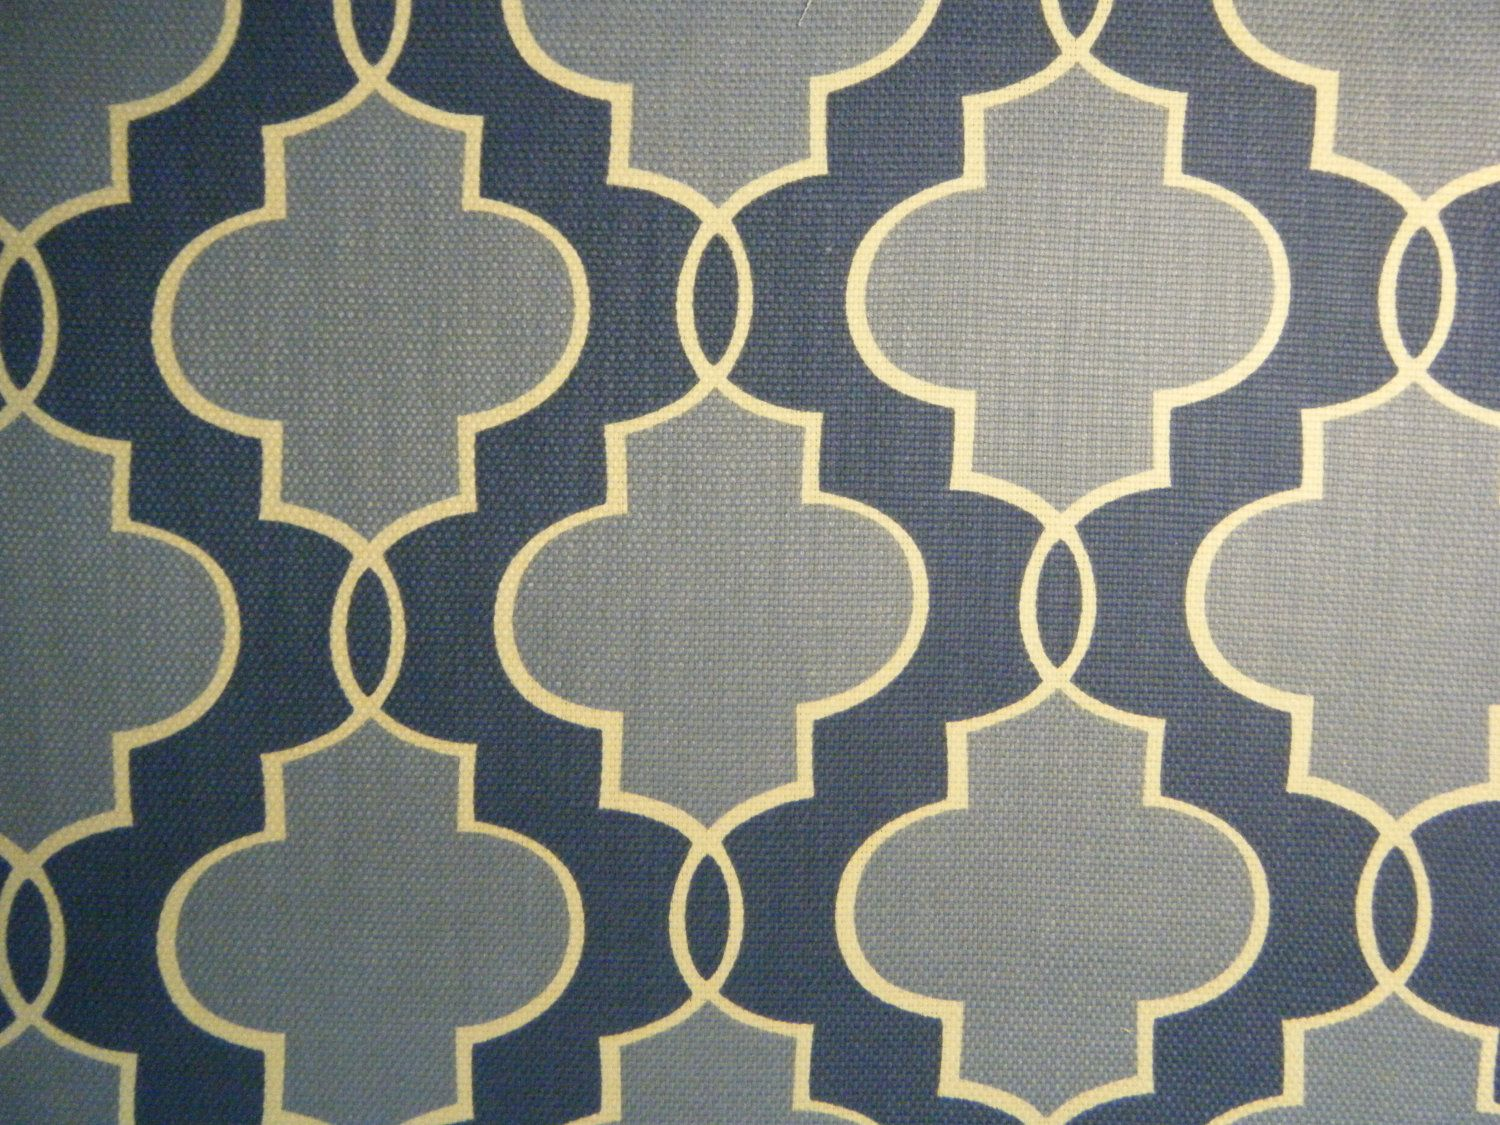 Moroccan curtains fabrics - Moroccan Inspired Geometric Print Upholstery Fabric 24 99 Via Etsy